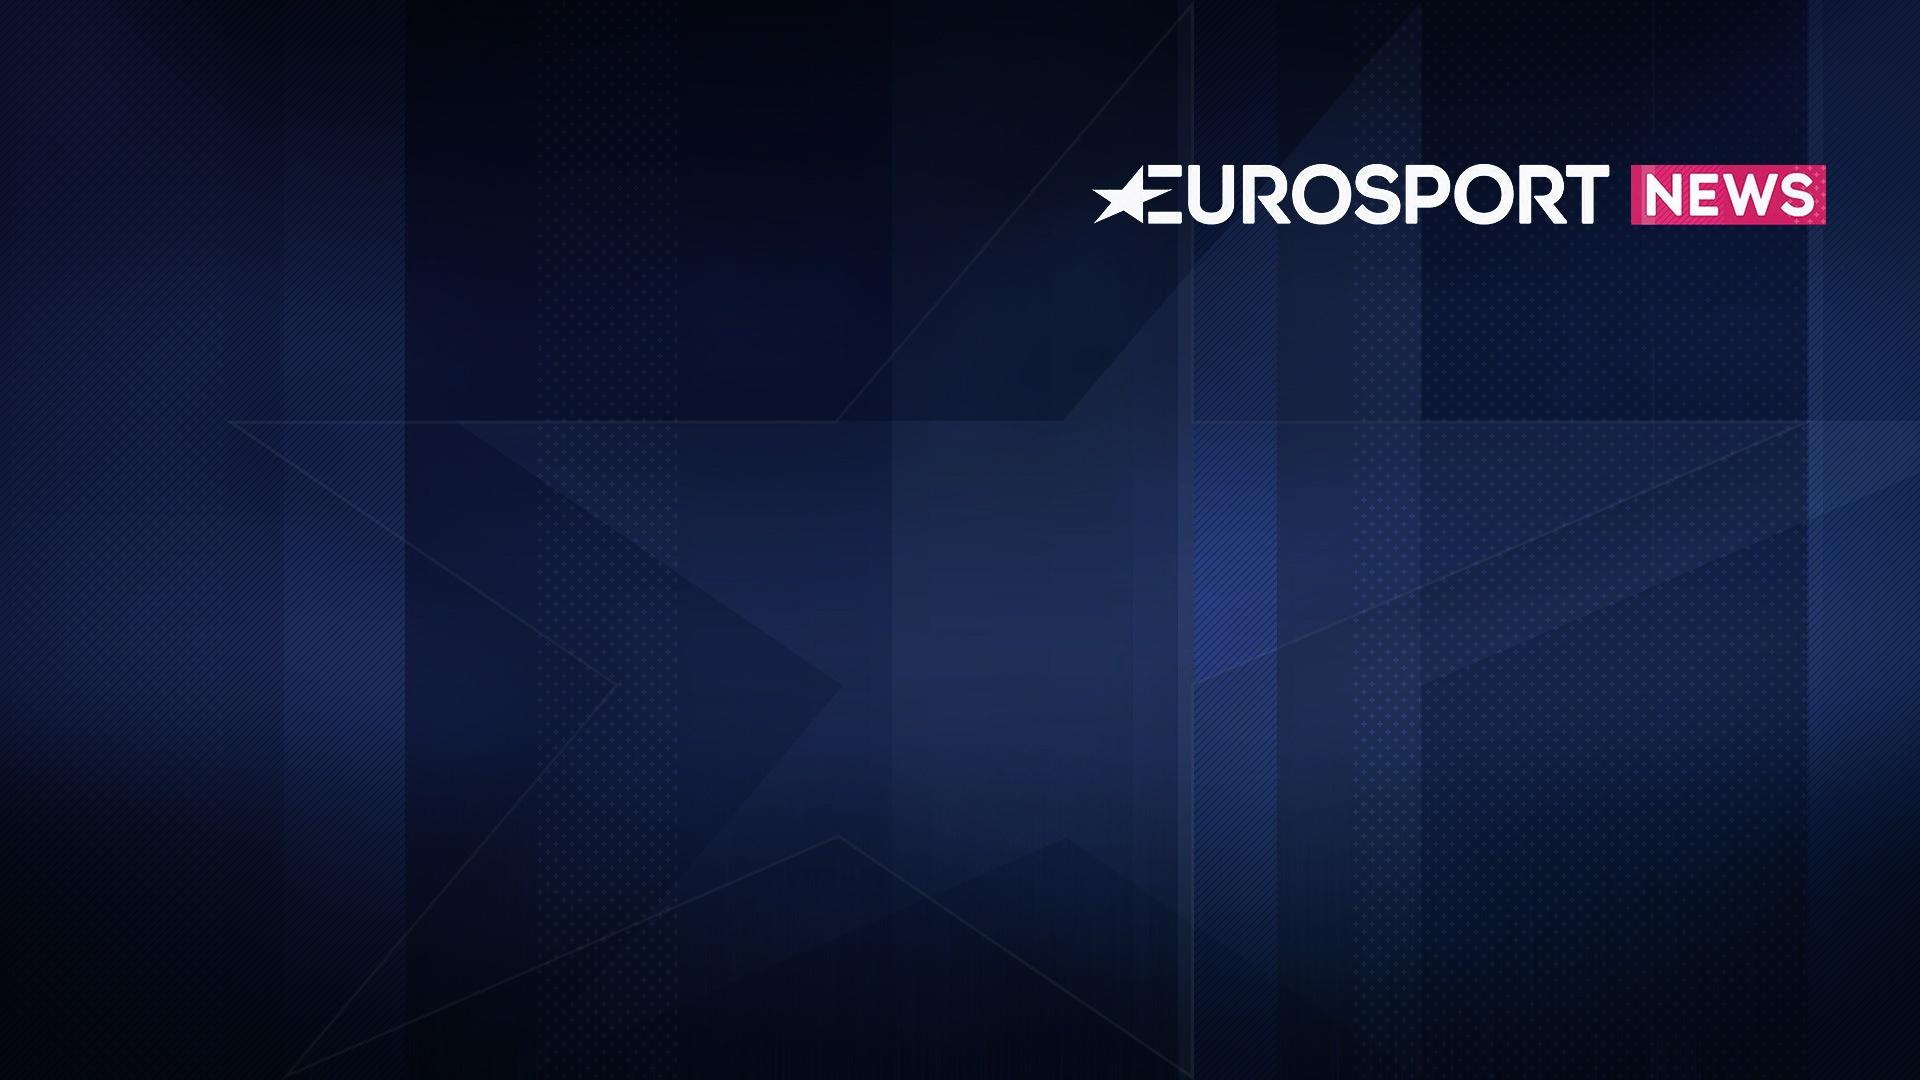 Eurosport HD Flash News: Bollettino